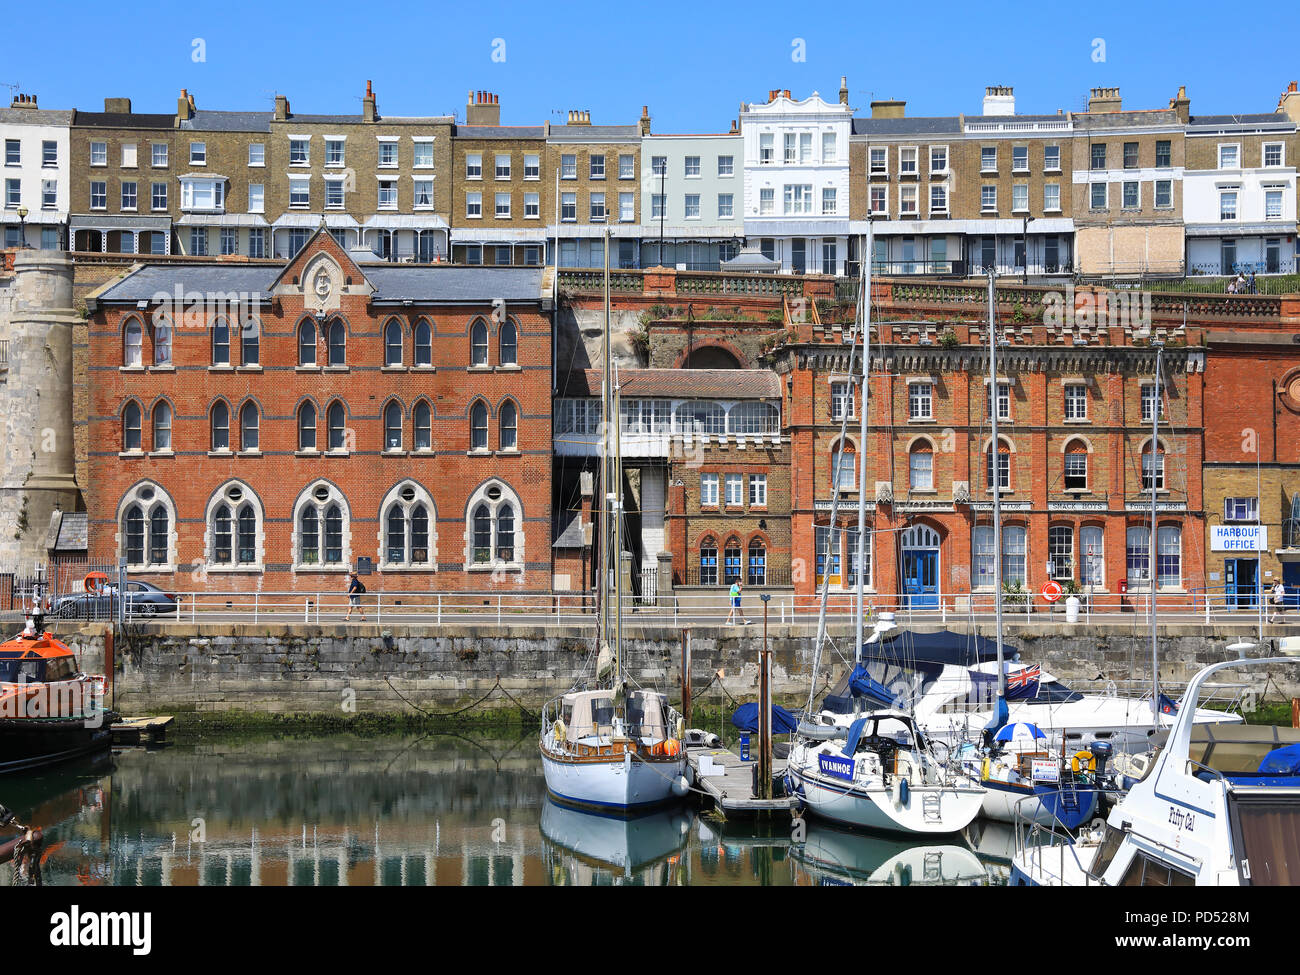 The Sailors' Church, next to the Ramsgate Home for Smack Boys, on the harbour, on the Isle of Thanet, Kent, UK - Stock Image